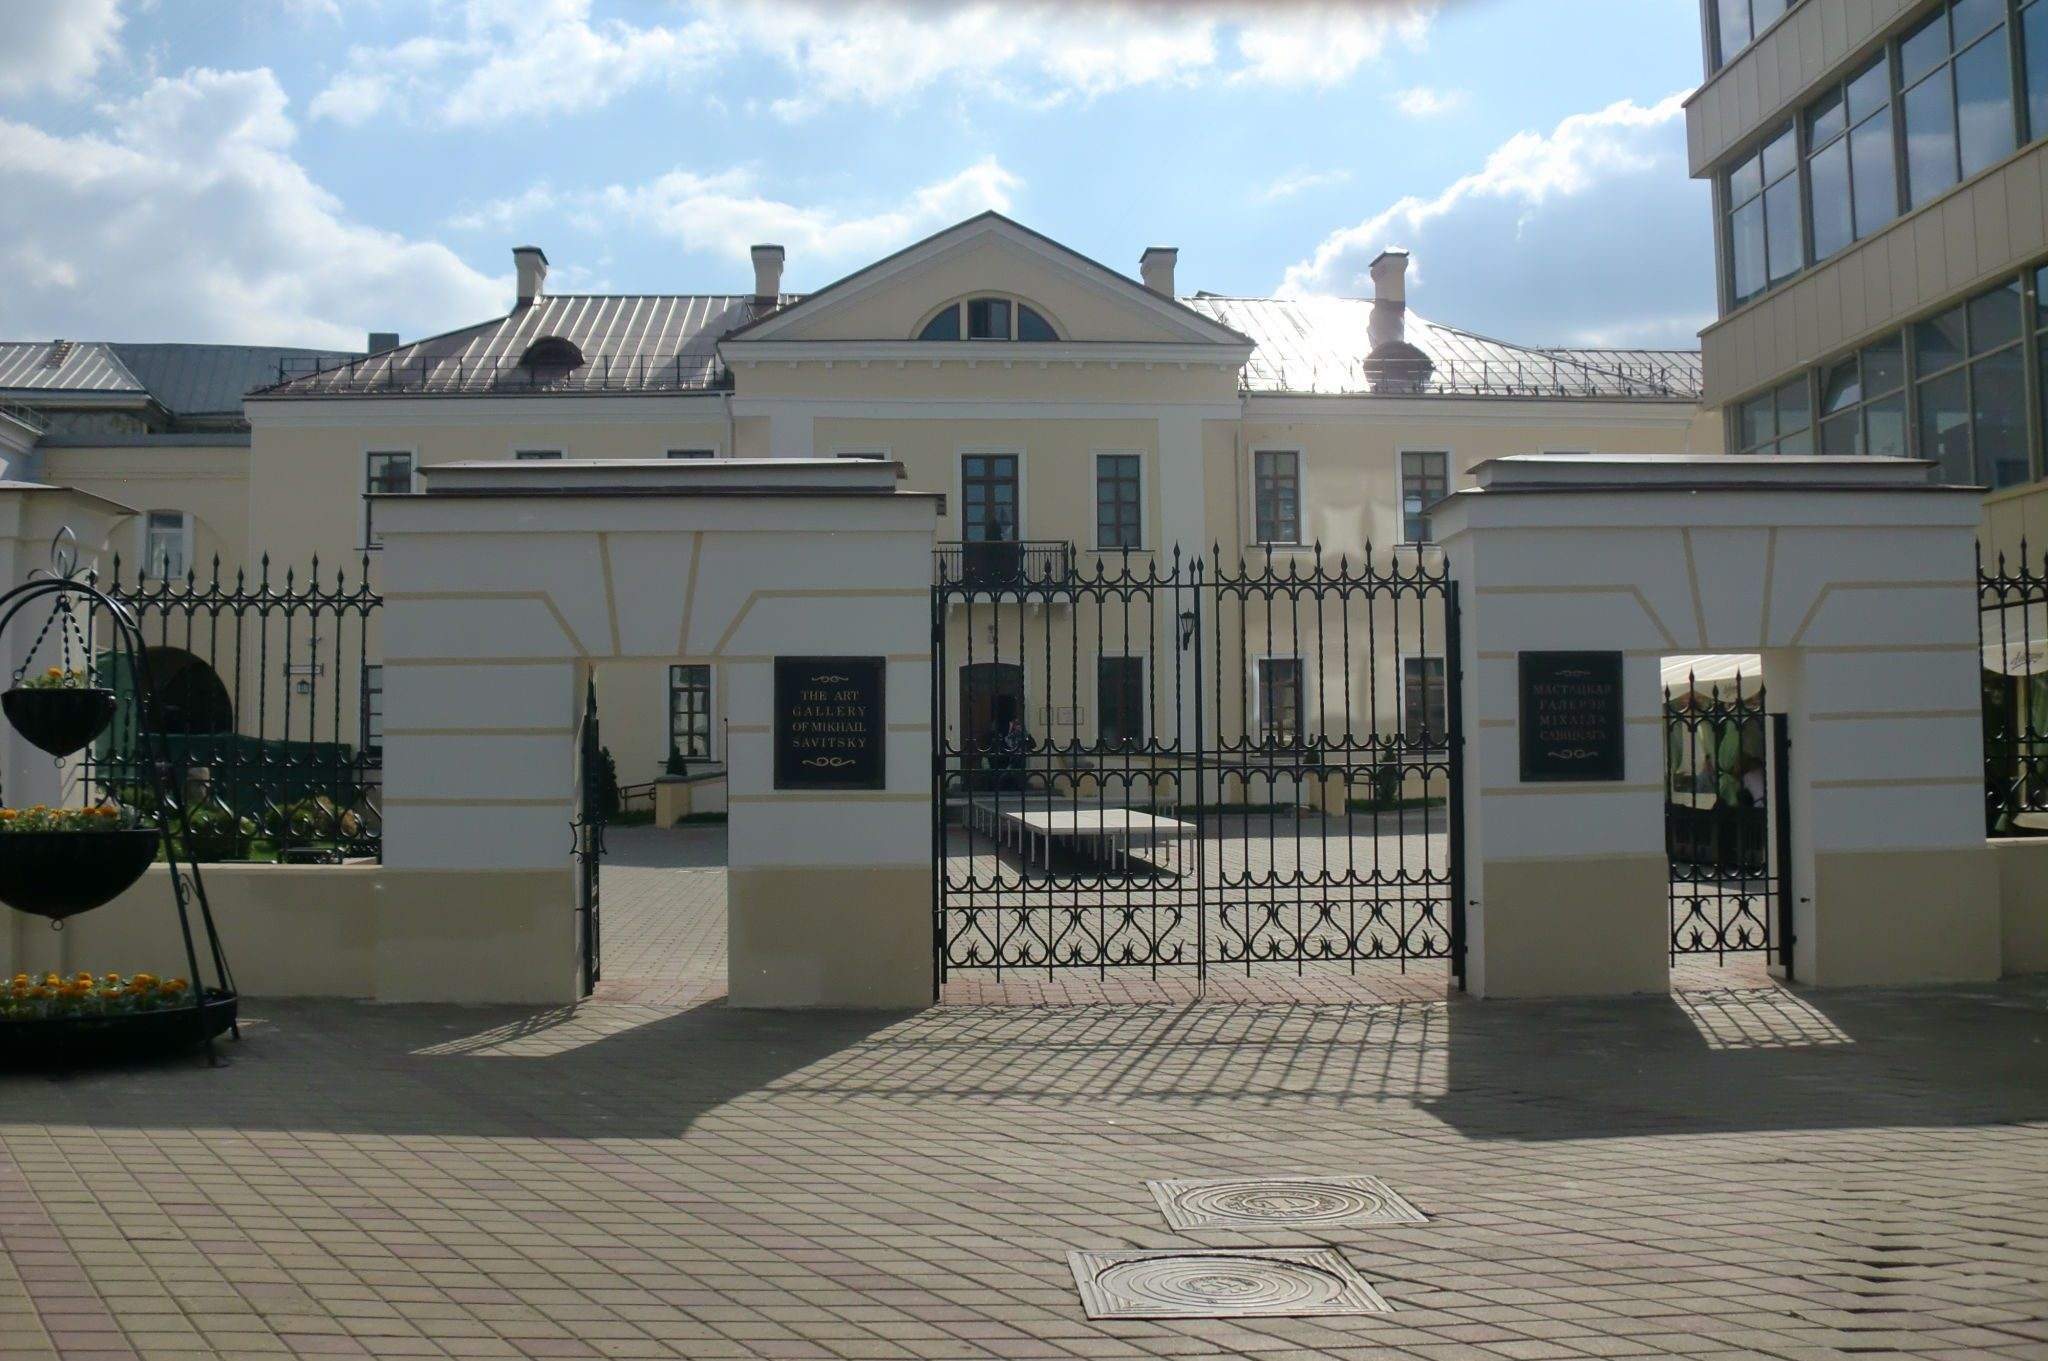 Minsk old town 16 e1571081081320 - Minsk, 1 amazing city you have to see